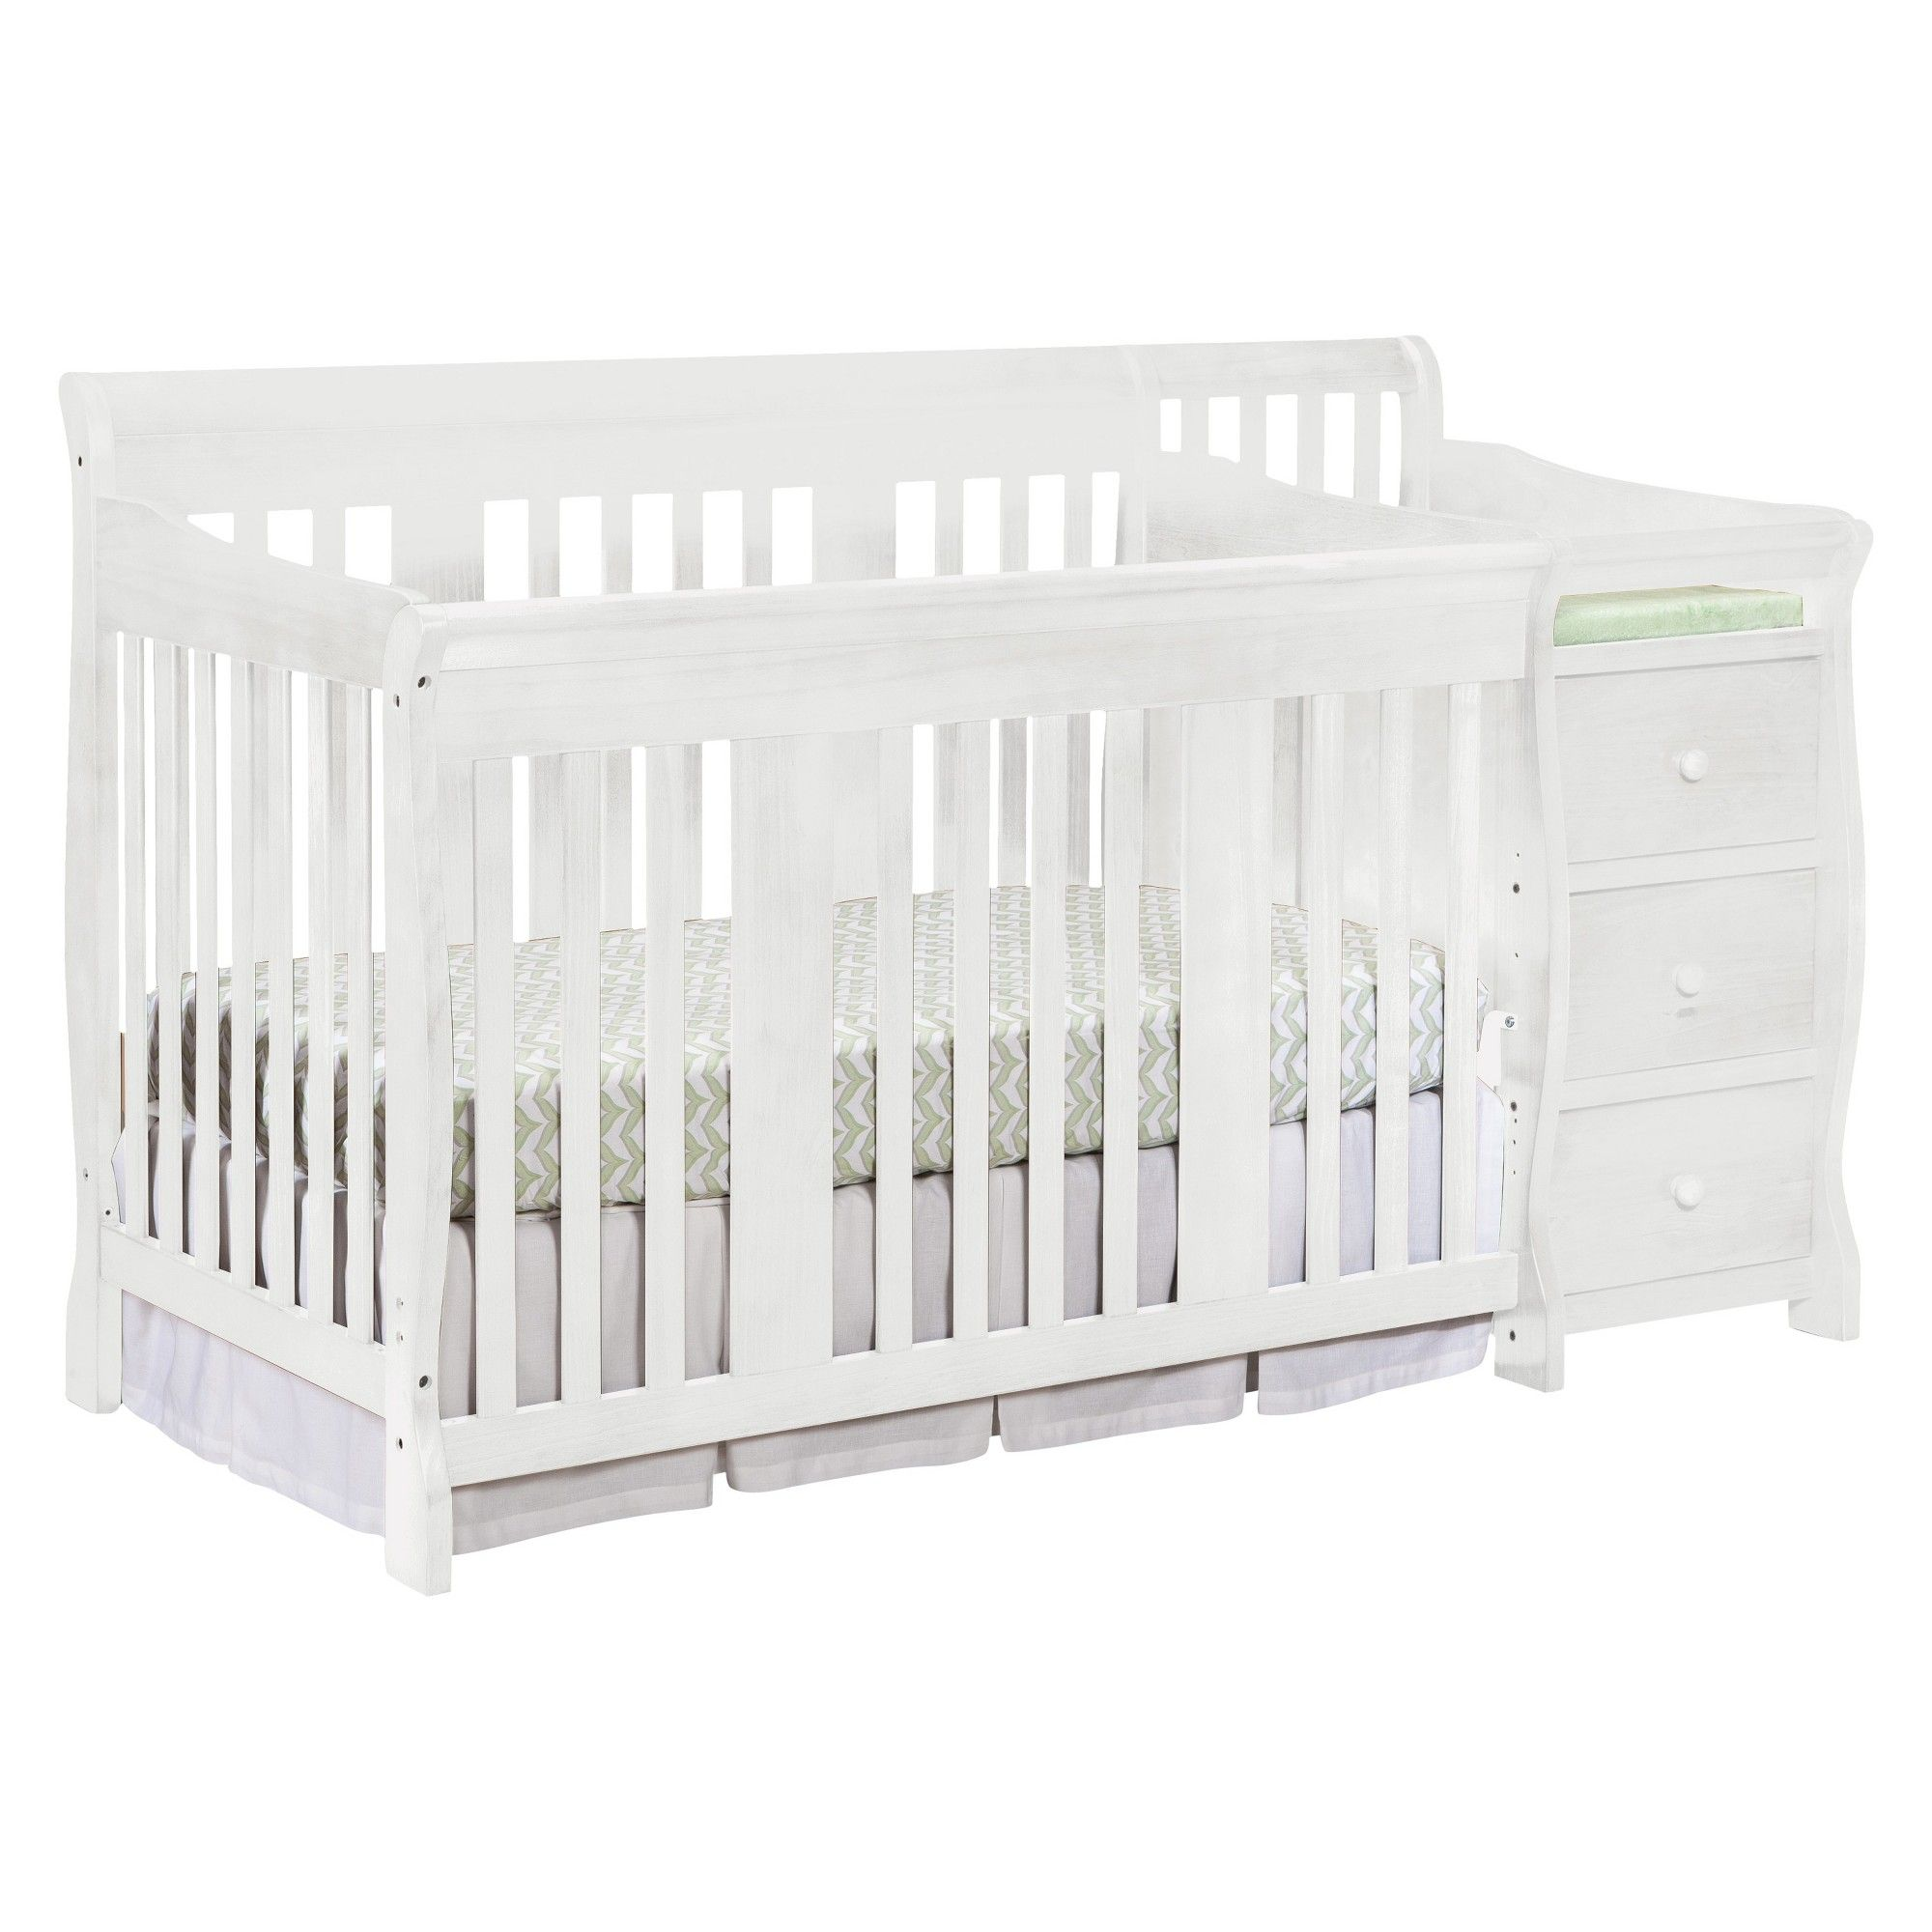 upcitemdb side crib com ean manufacturing storkcraft barcode of venetian baby cribs in craft info tuscany furniture upc inc stork convertible prod fixed